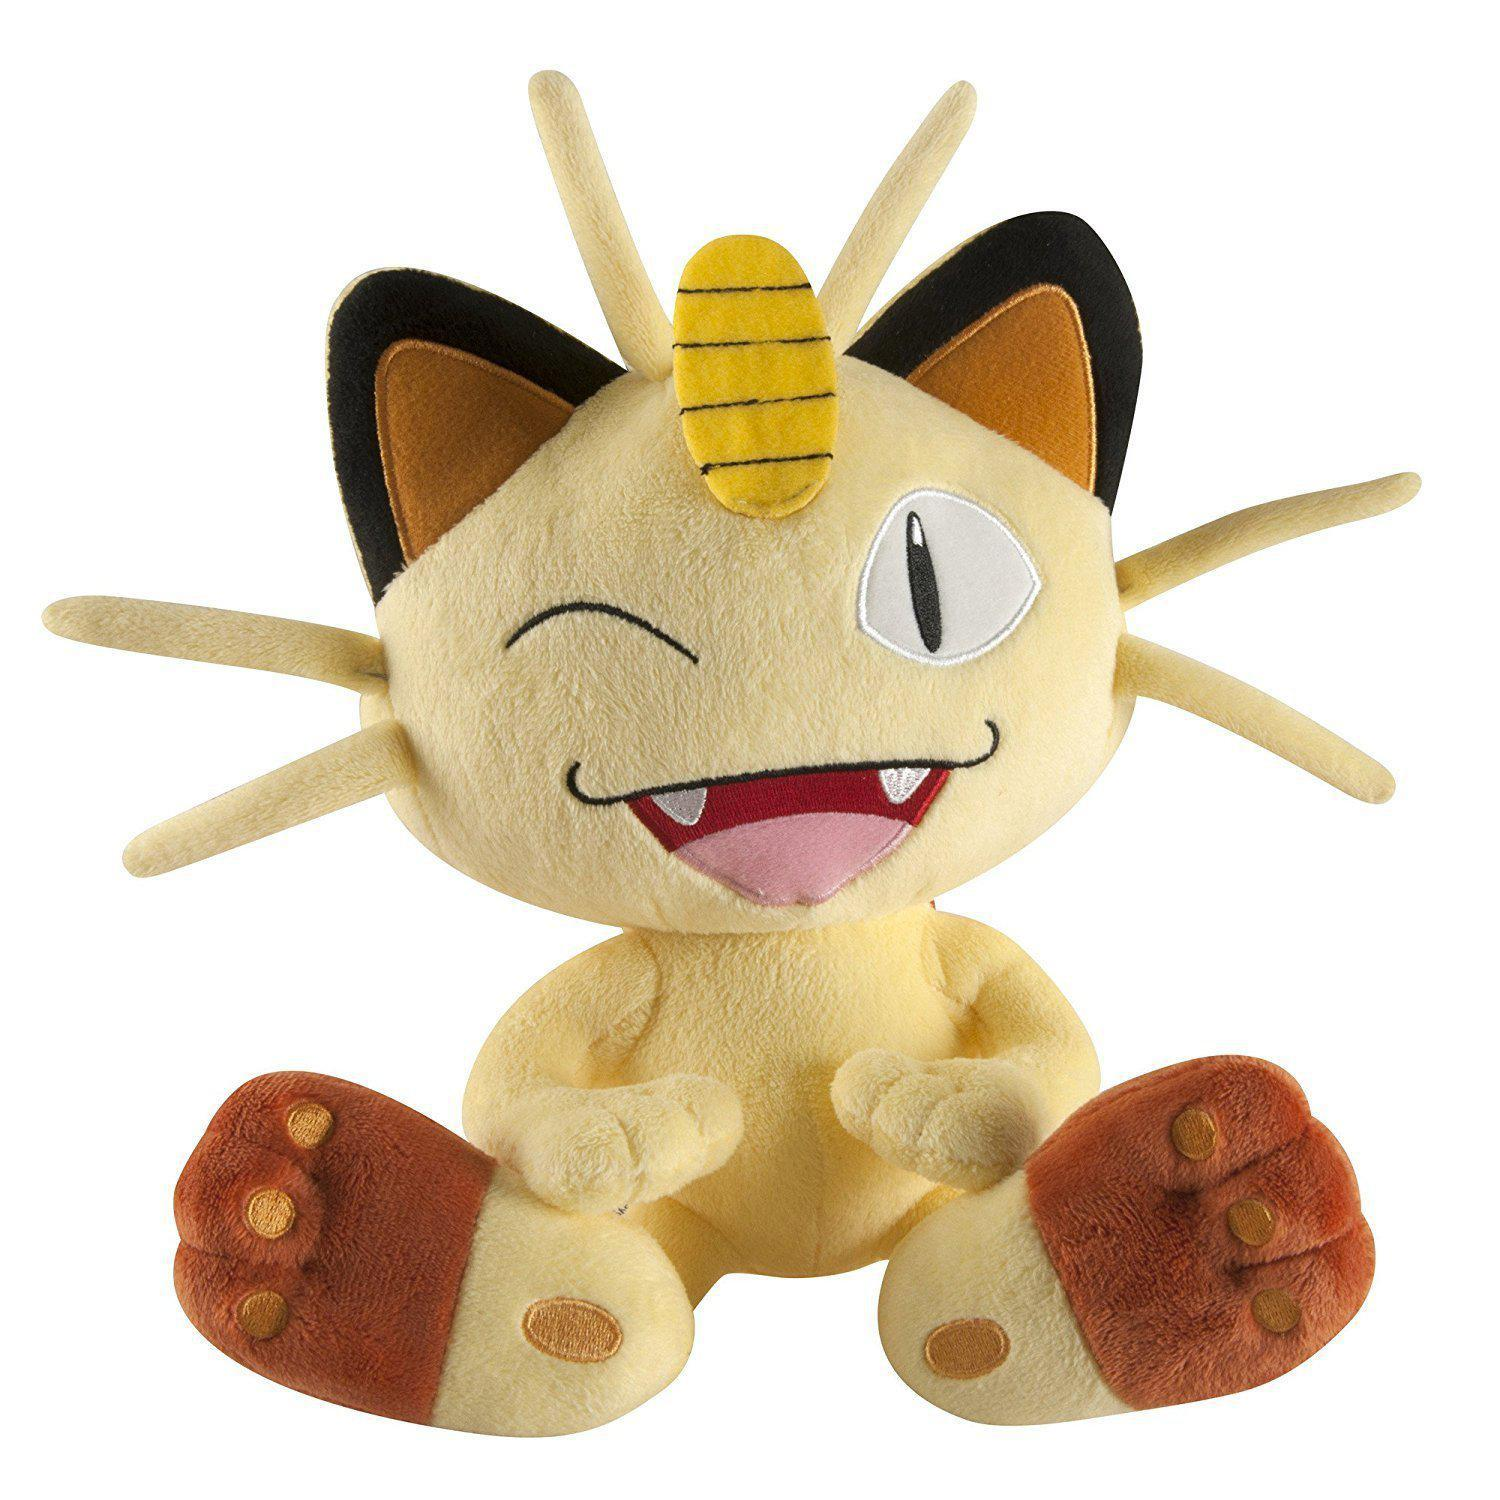 TOMY Pokemon Large Plush Meowth 10""